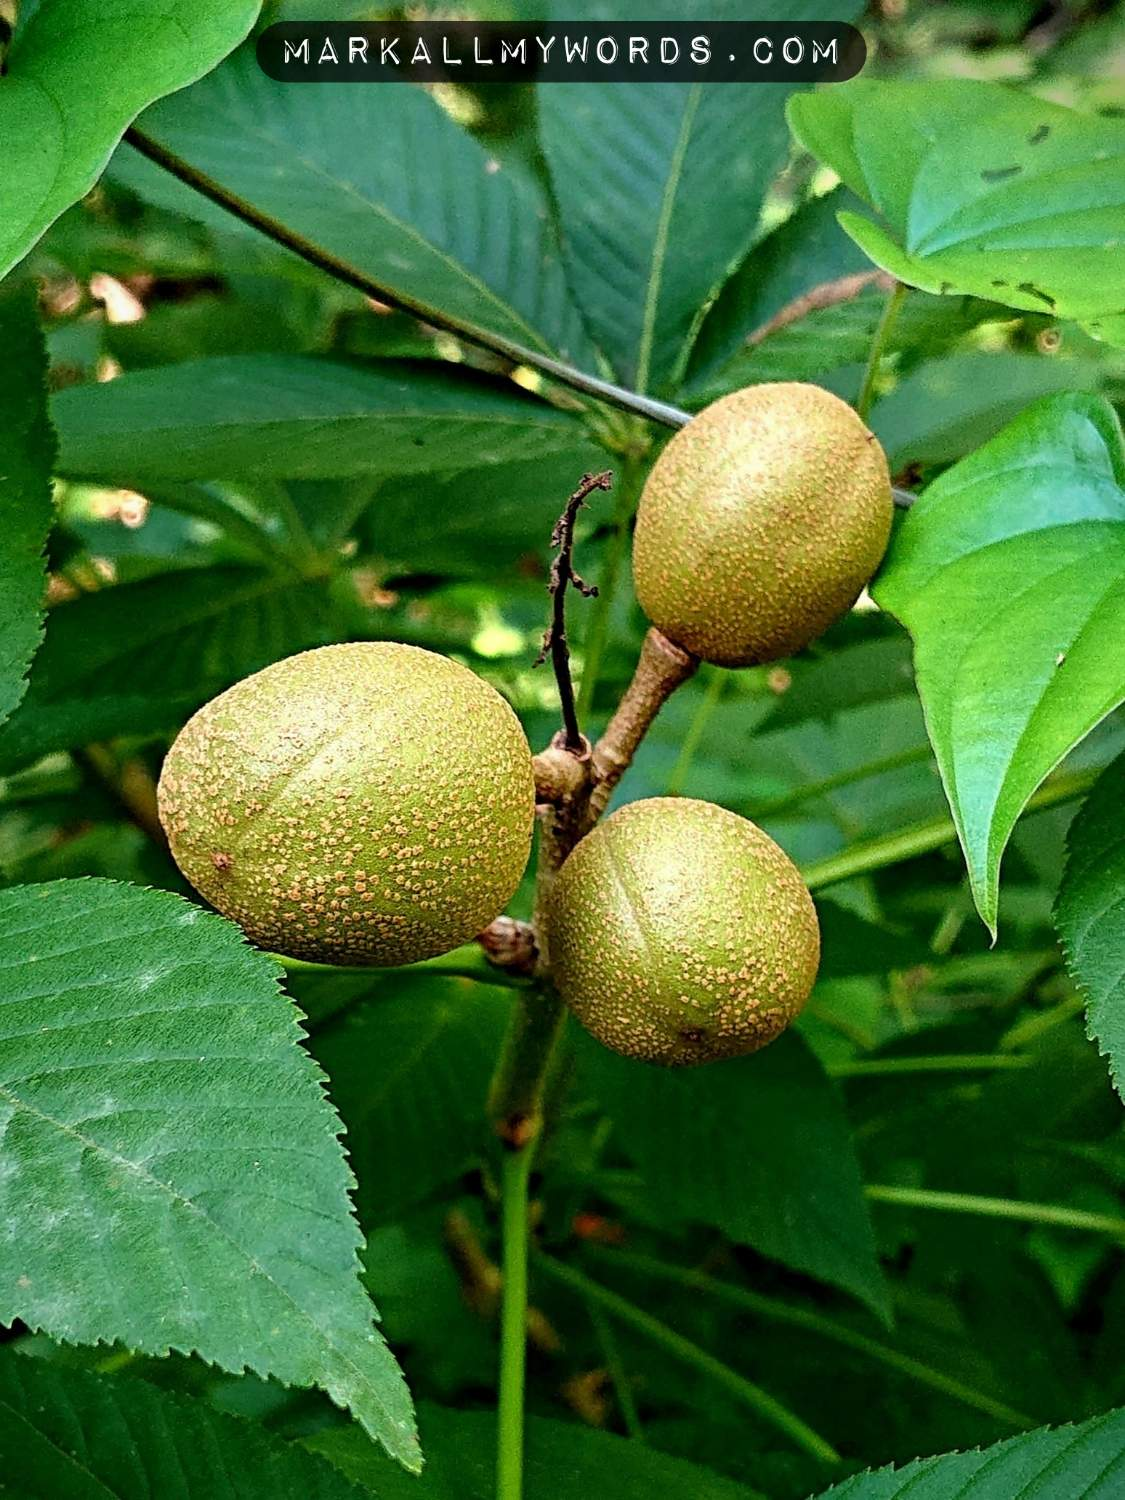 Buckeye fruits on branch in forest